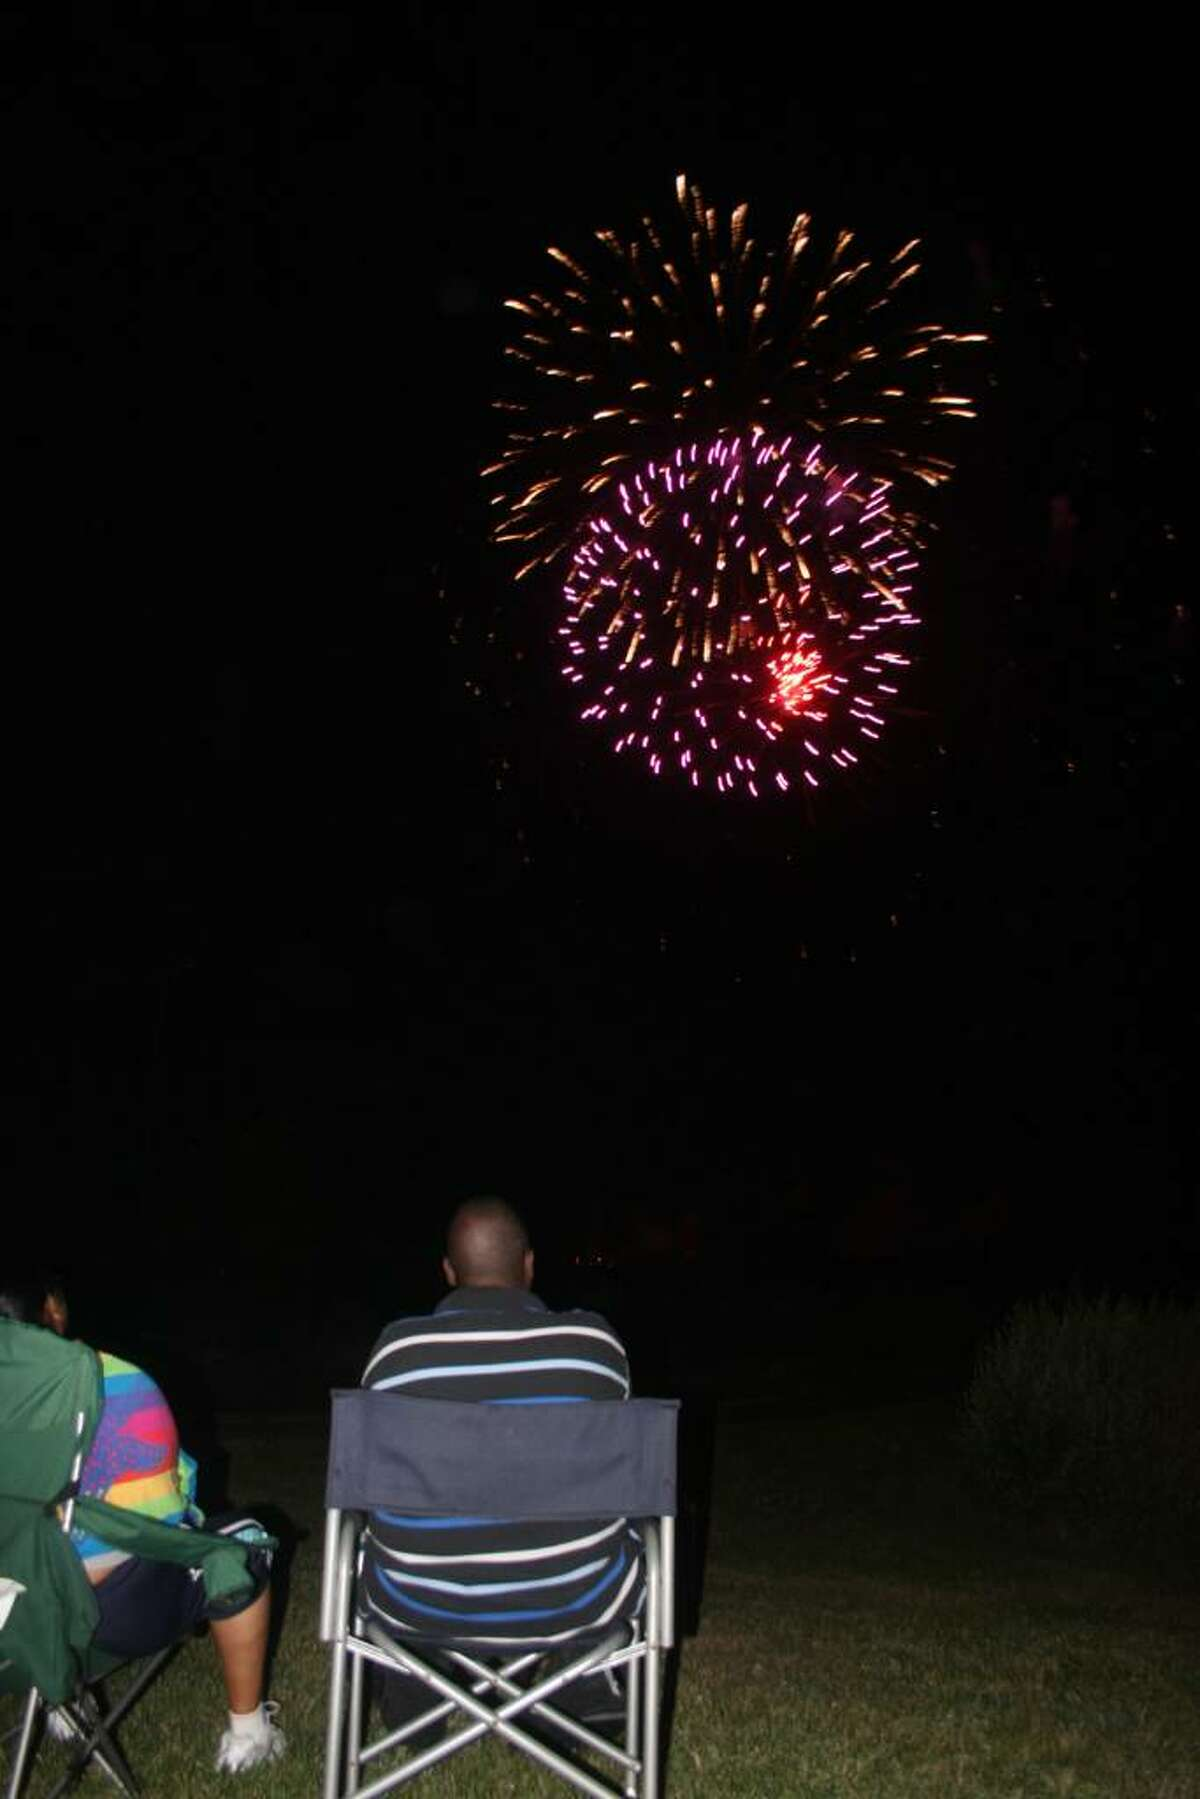 Stratford residents celebrated the Fourth of July at Short Beach Saturday night with festivities for the family followed by a fireworks display.